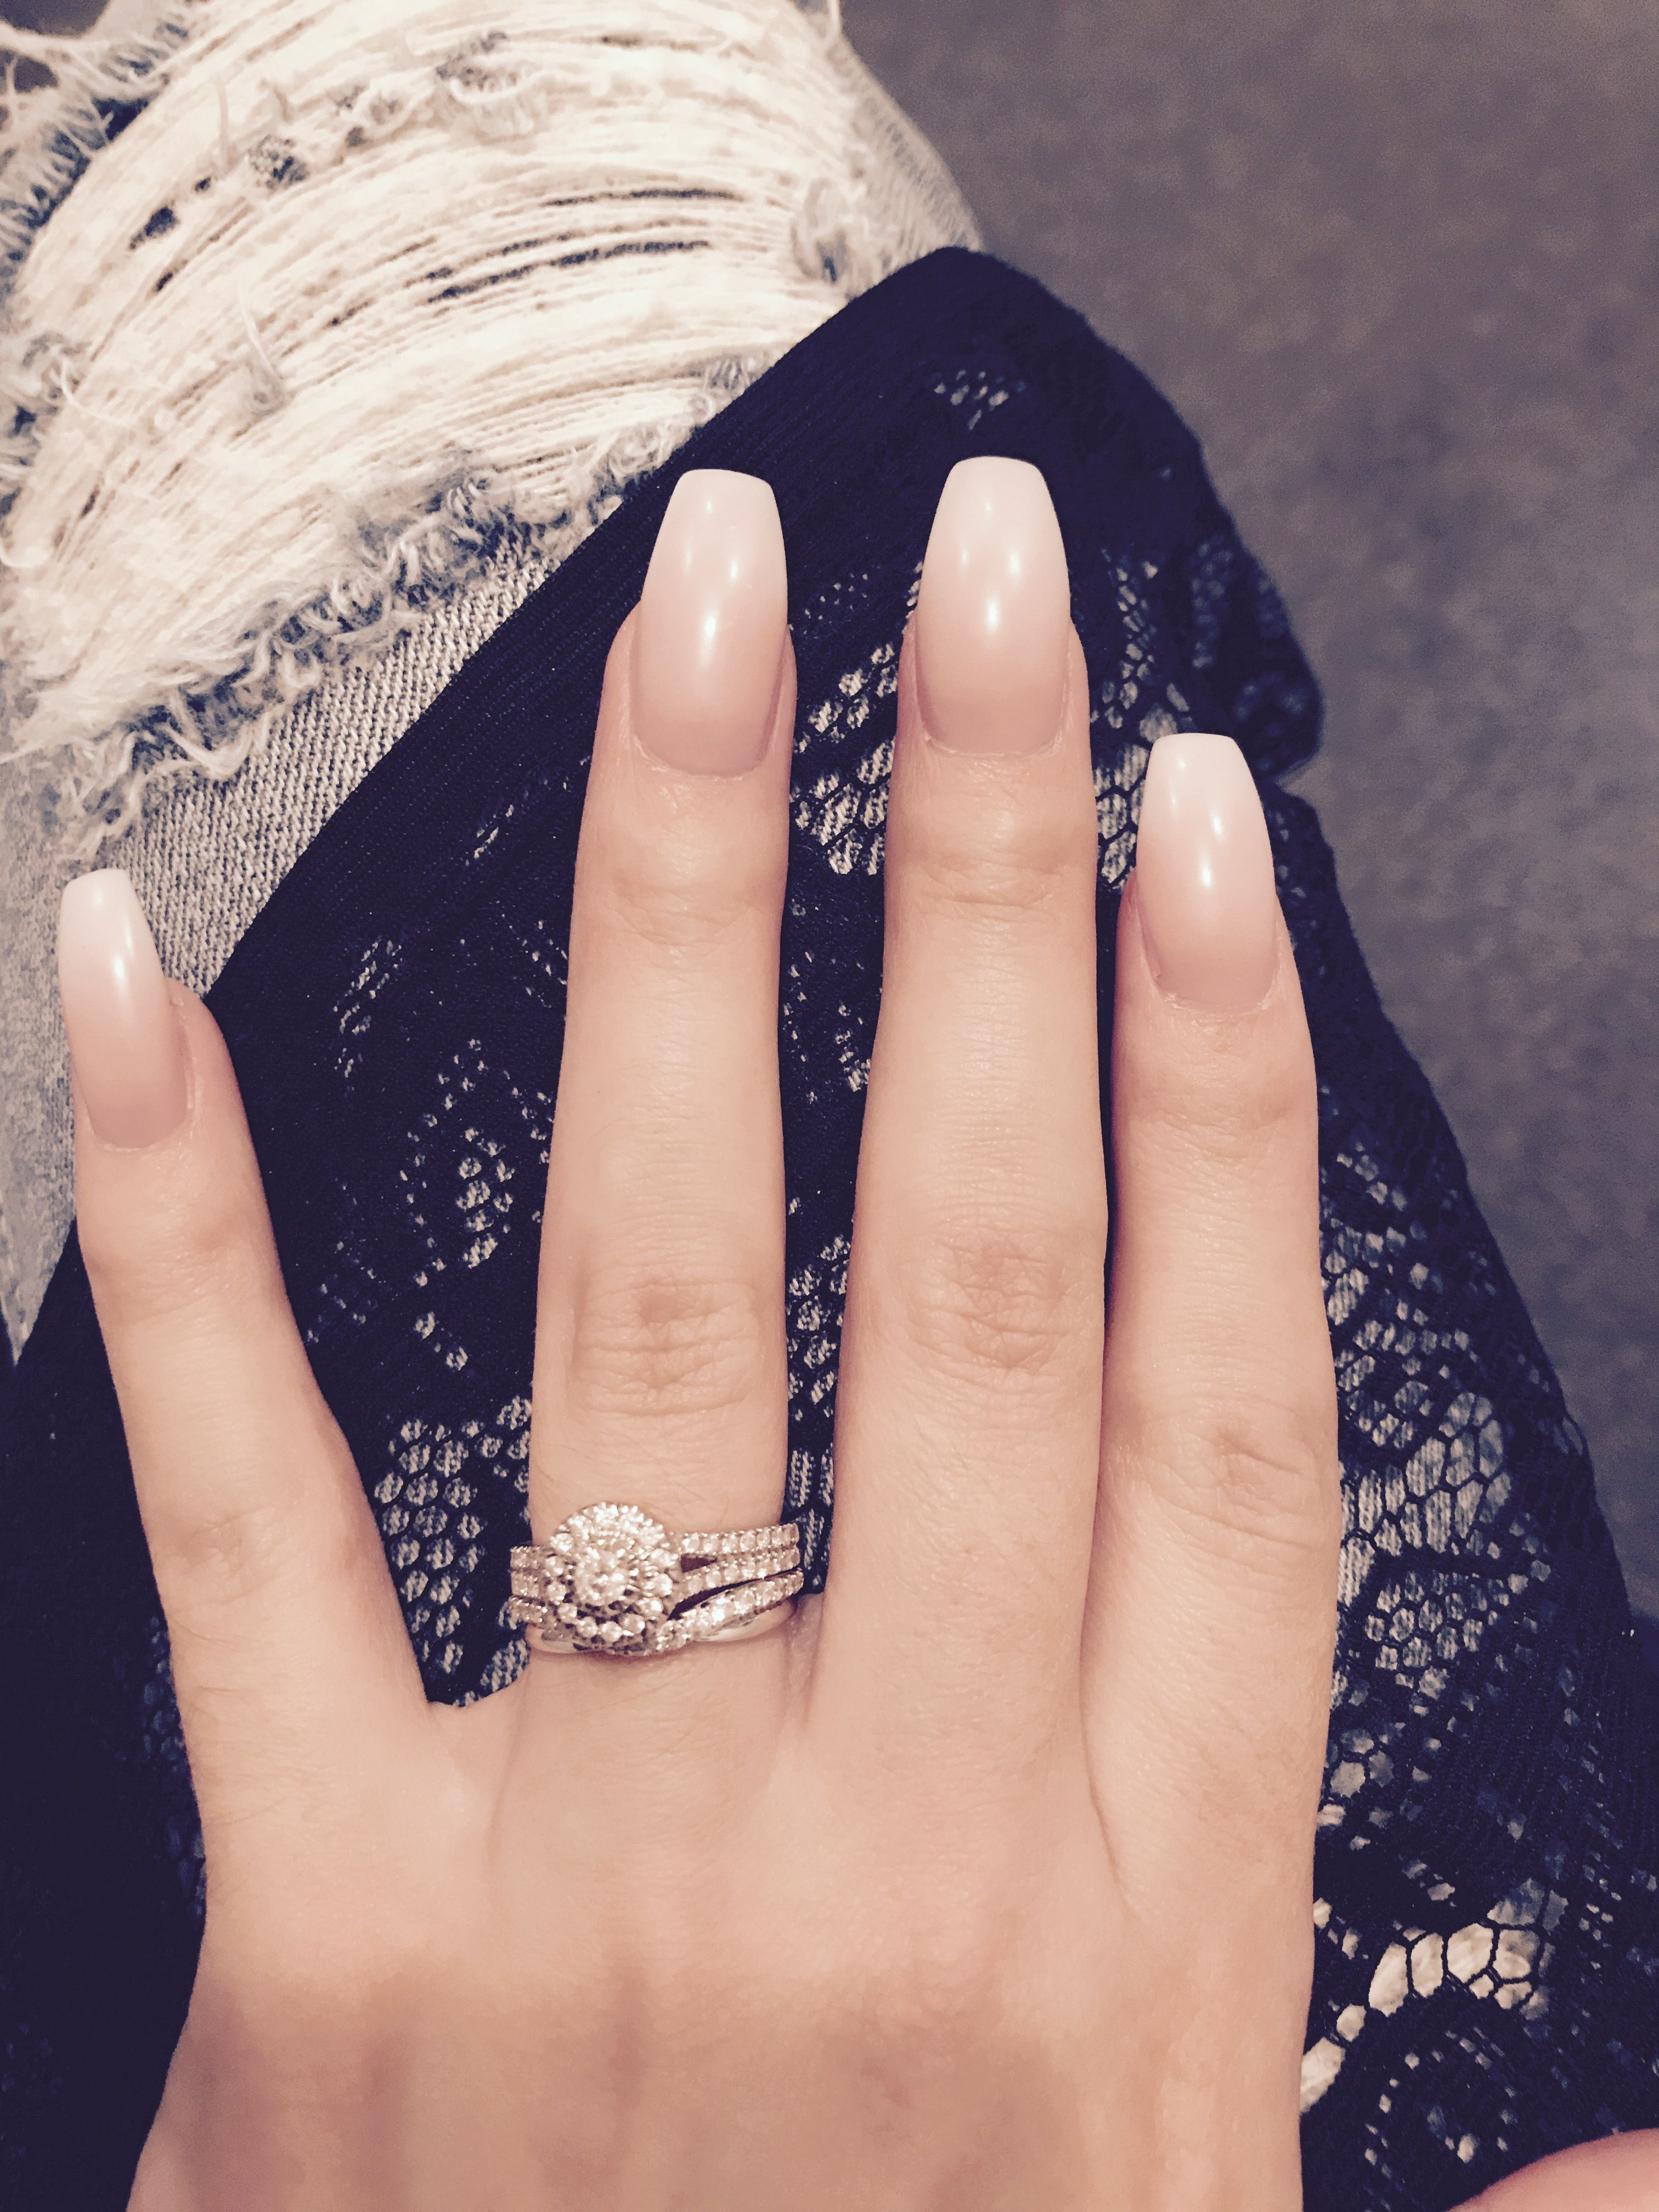 Natural ombré nails | nails(; | Pinterest | Natural, Manicure and ...